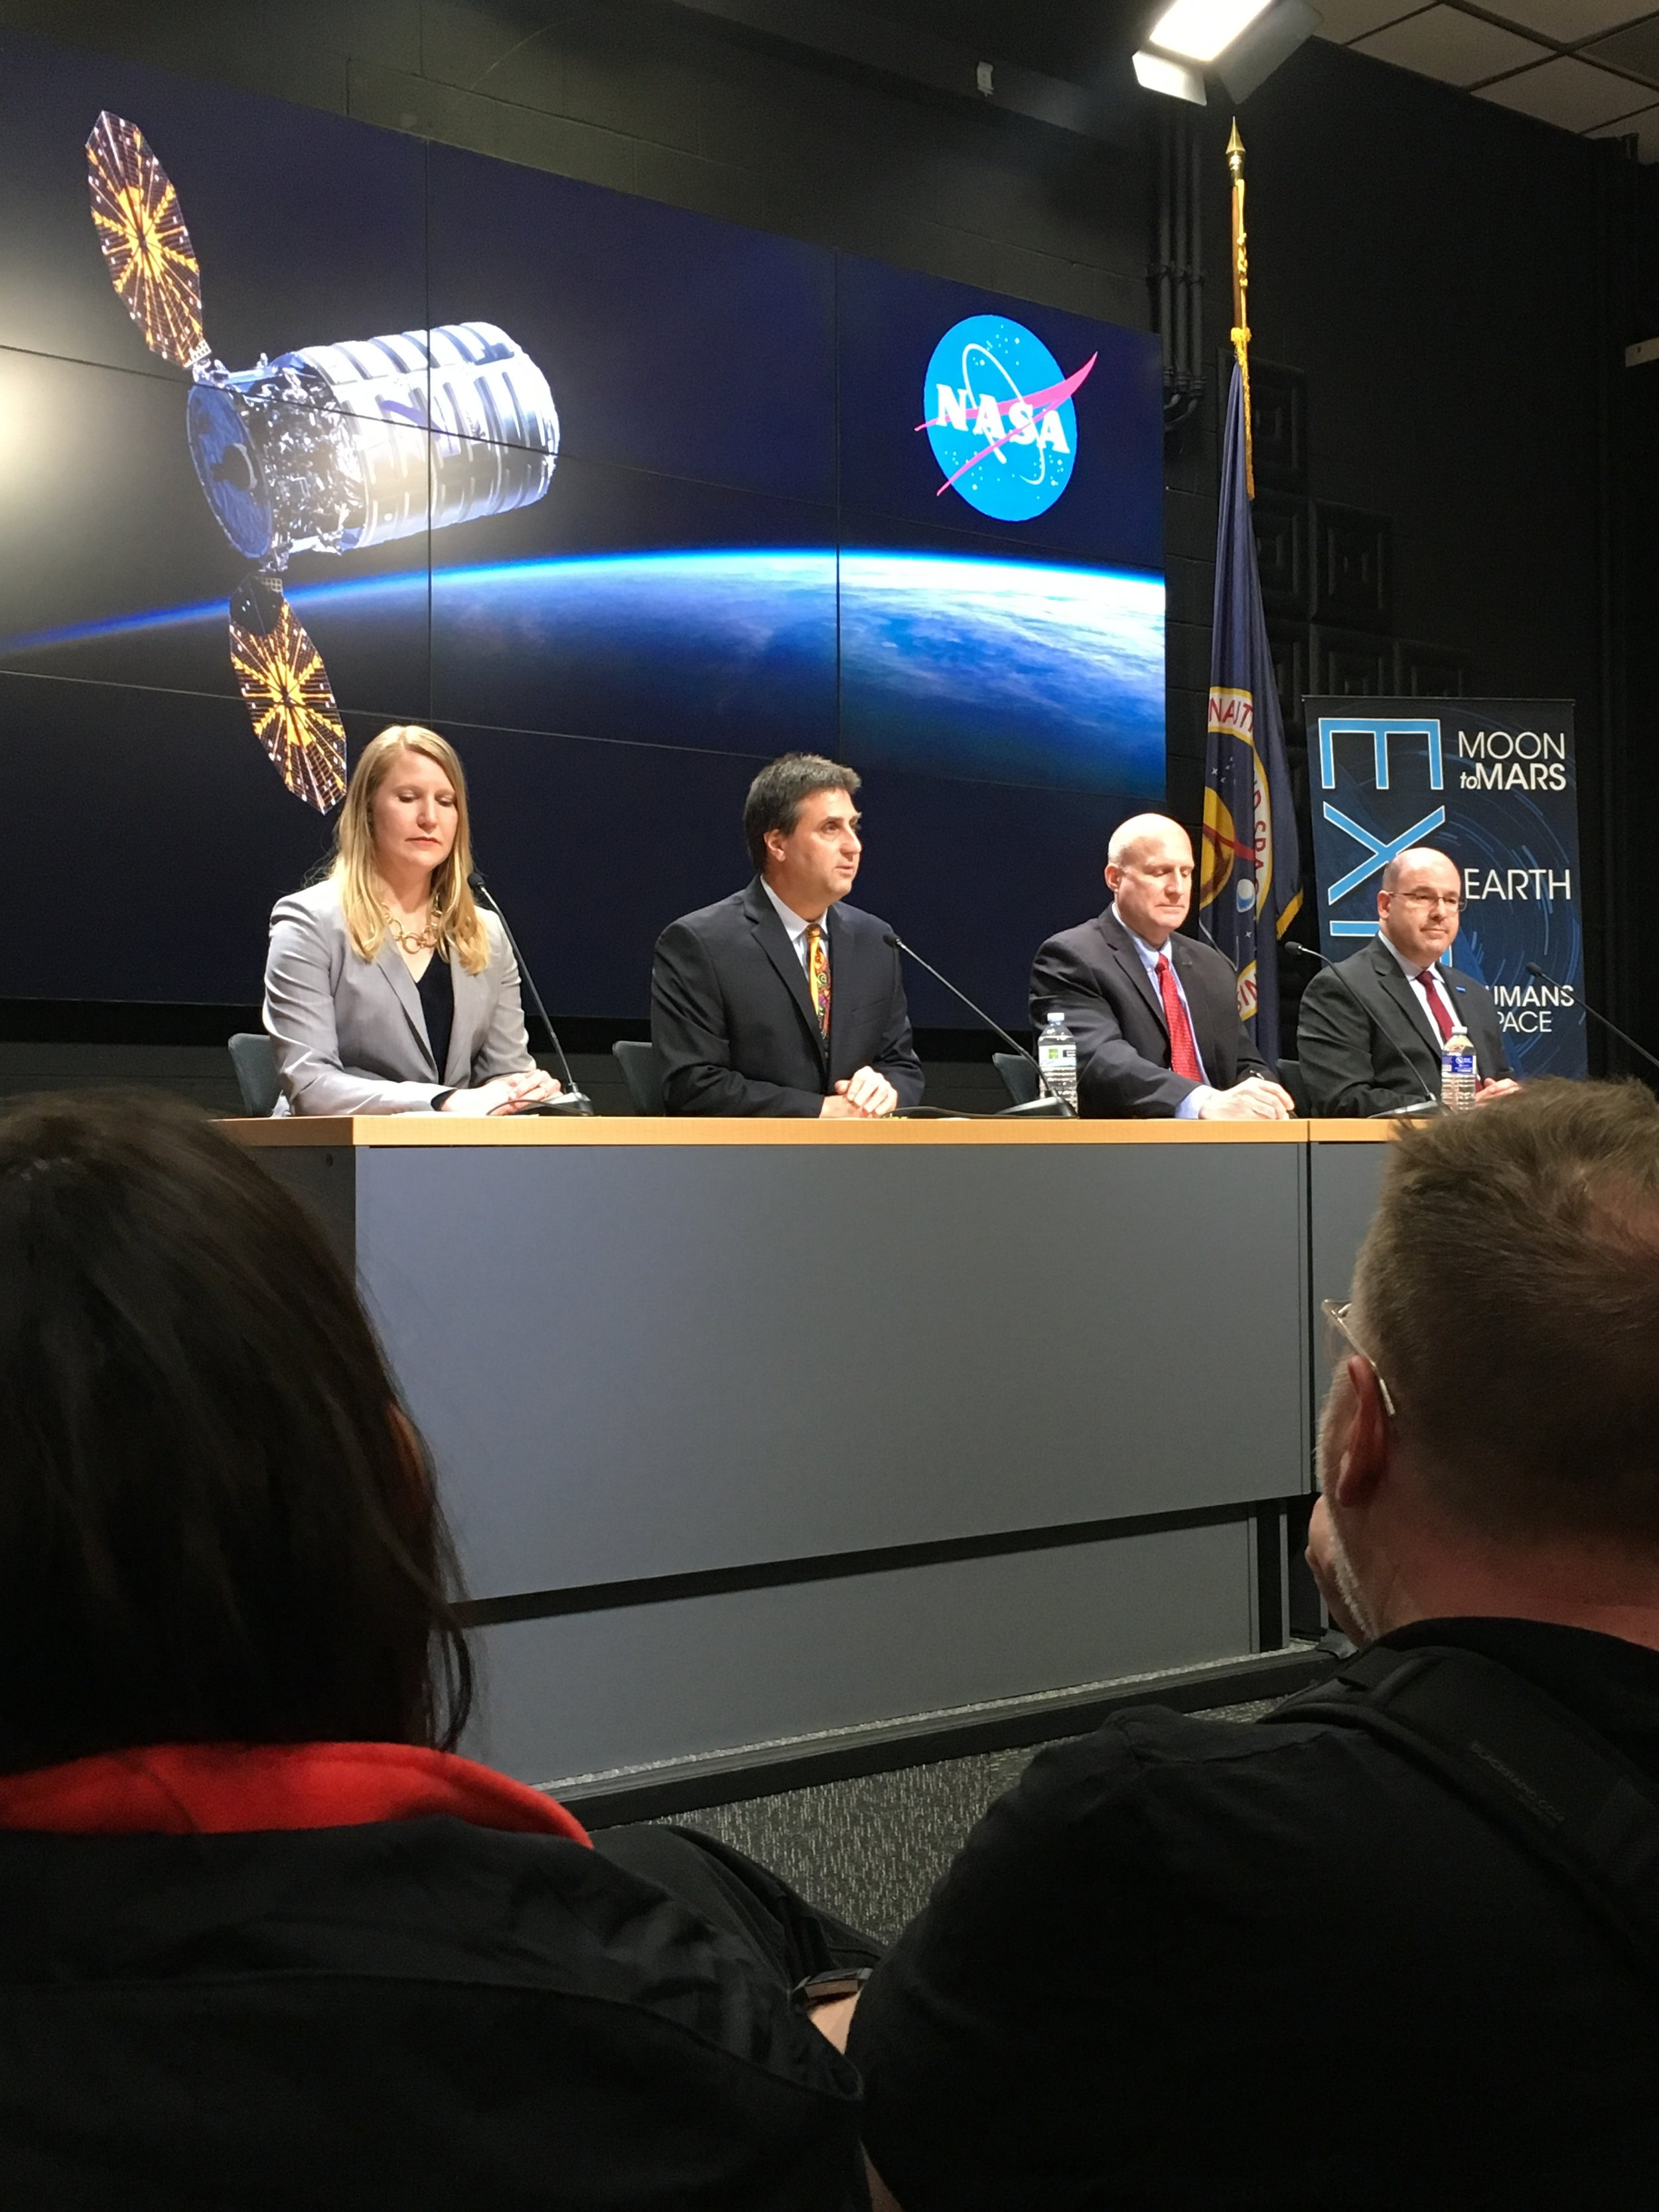 The post-launch press briefing underway.